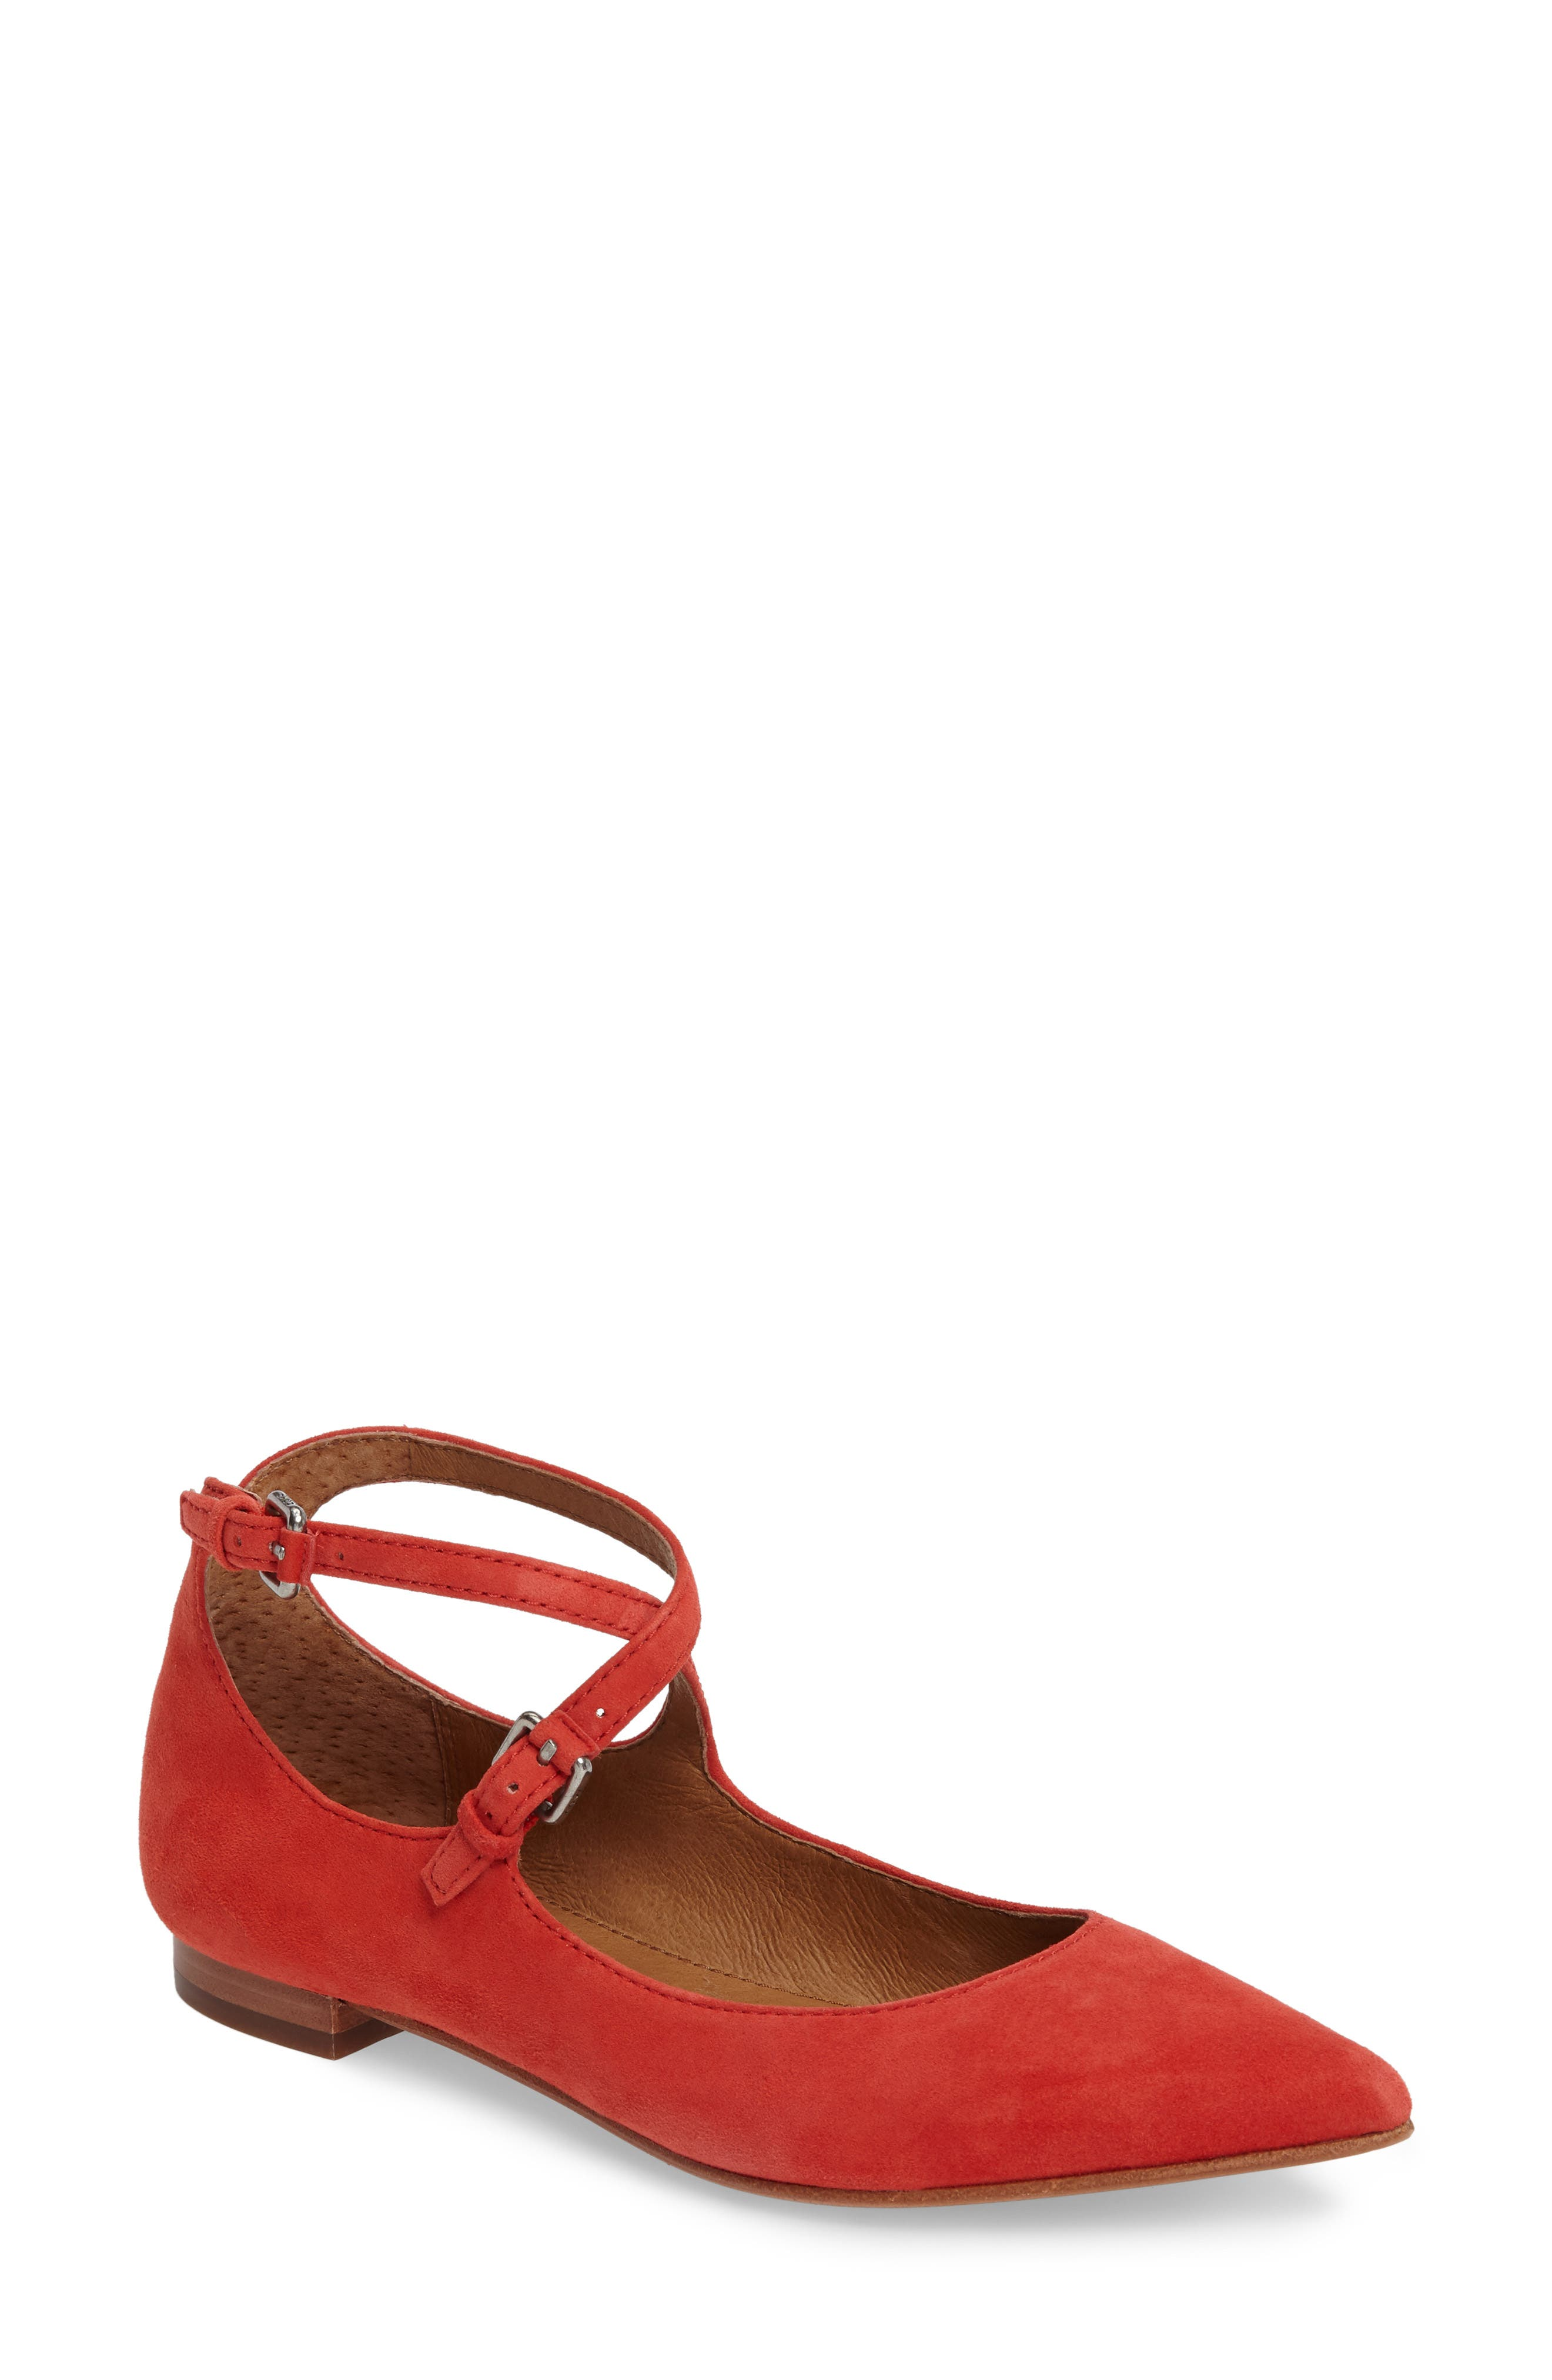 Sienna Cross Ballet Flat,                             Main thumbnail 3, color,